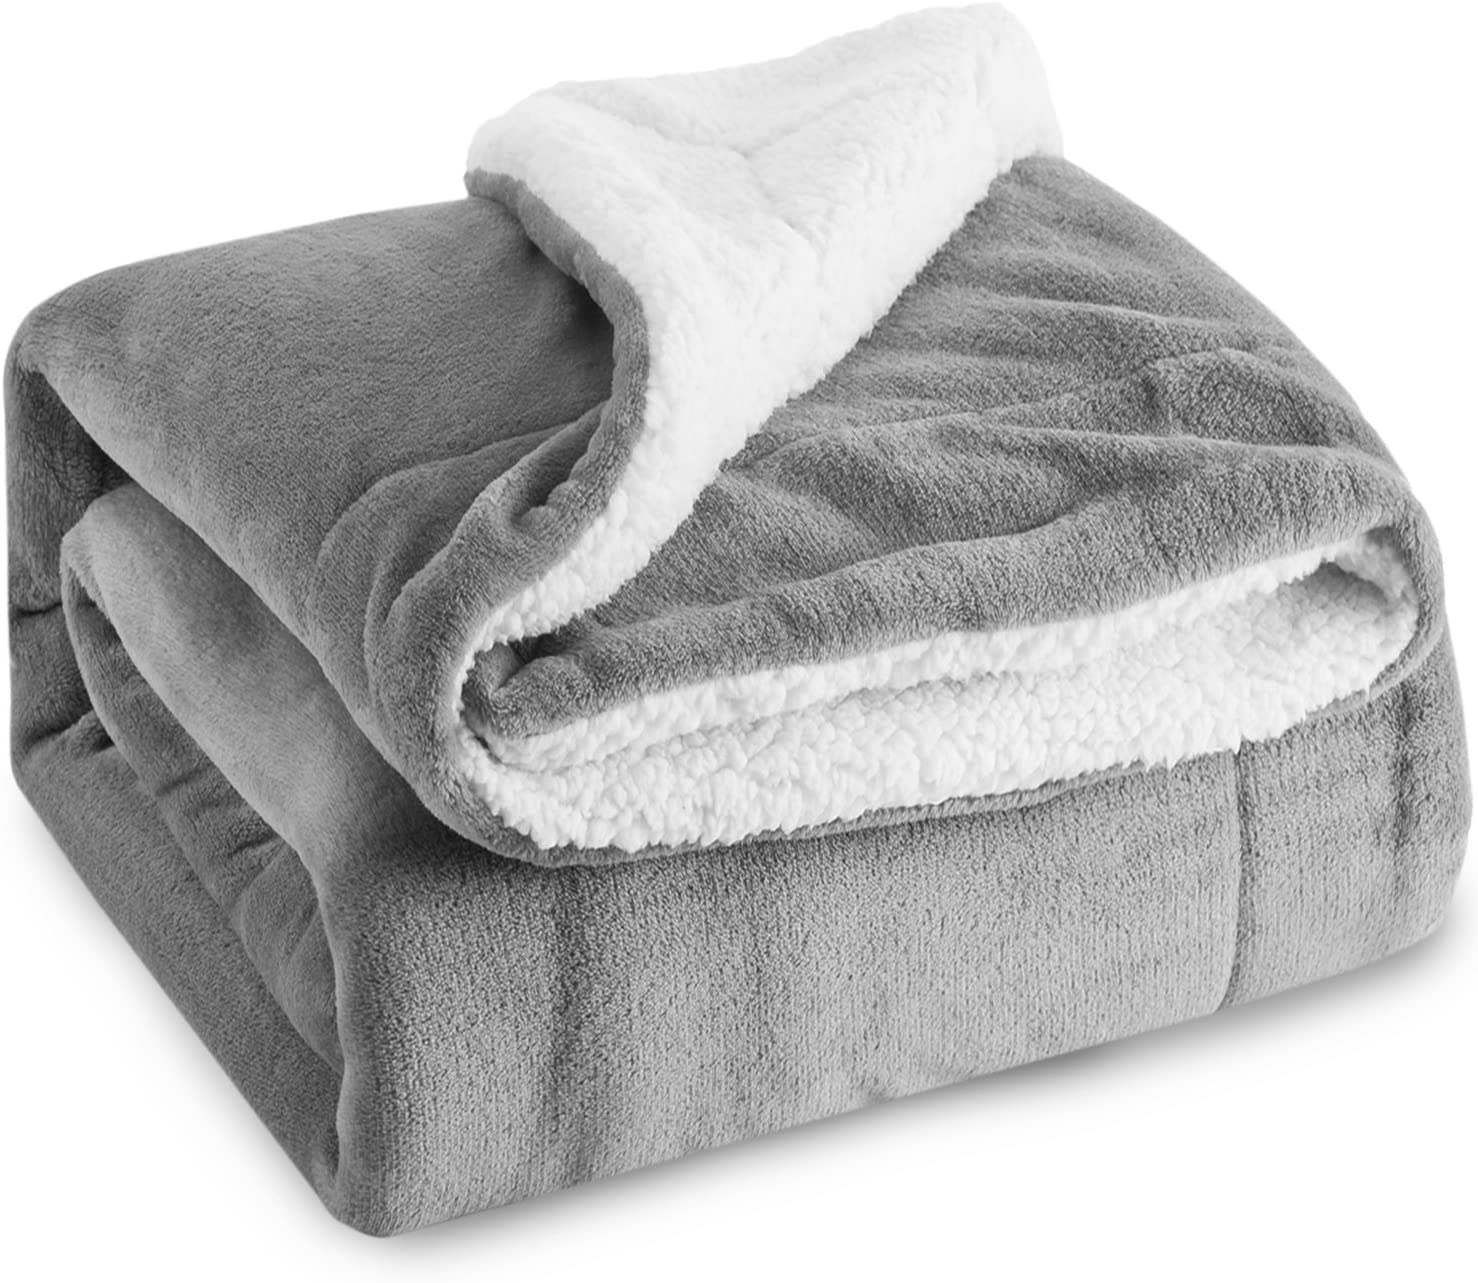 BEDSURE Sherpa Fleece Blanket Throw Size Grey Plush Throw Blanket Fuzzy Soft Blanket Microfiber